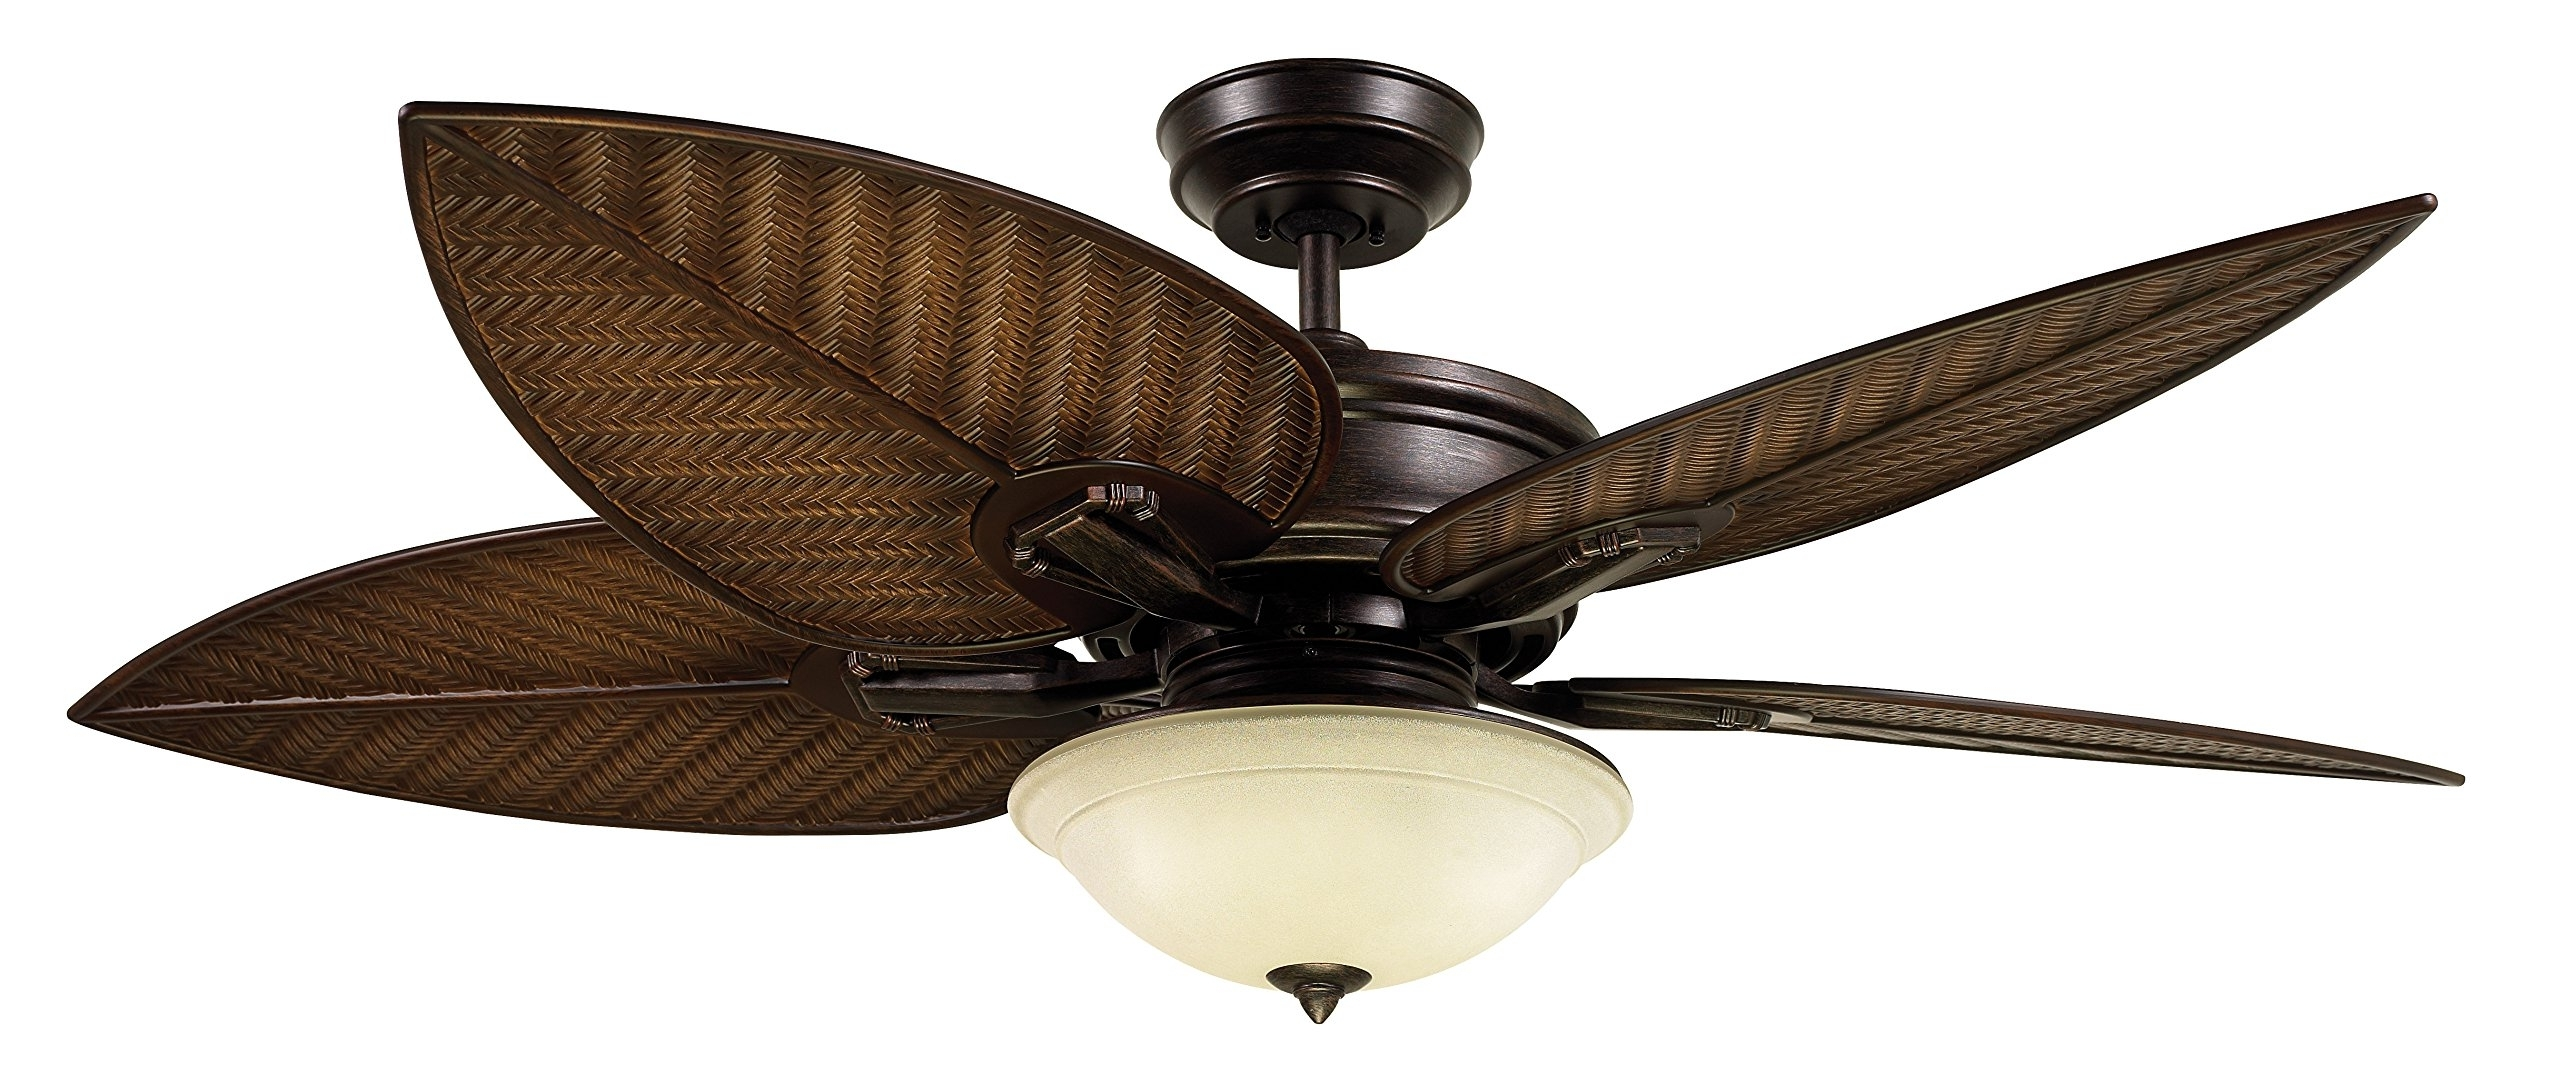 2018 Casa Vieja Outdoor Ceiling Fans Throughout Cheap Outdoor Ceiling Fan, Find Outdoor Ceiling Fan Deals On Line At (View 14 of 20)